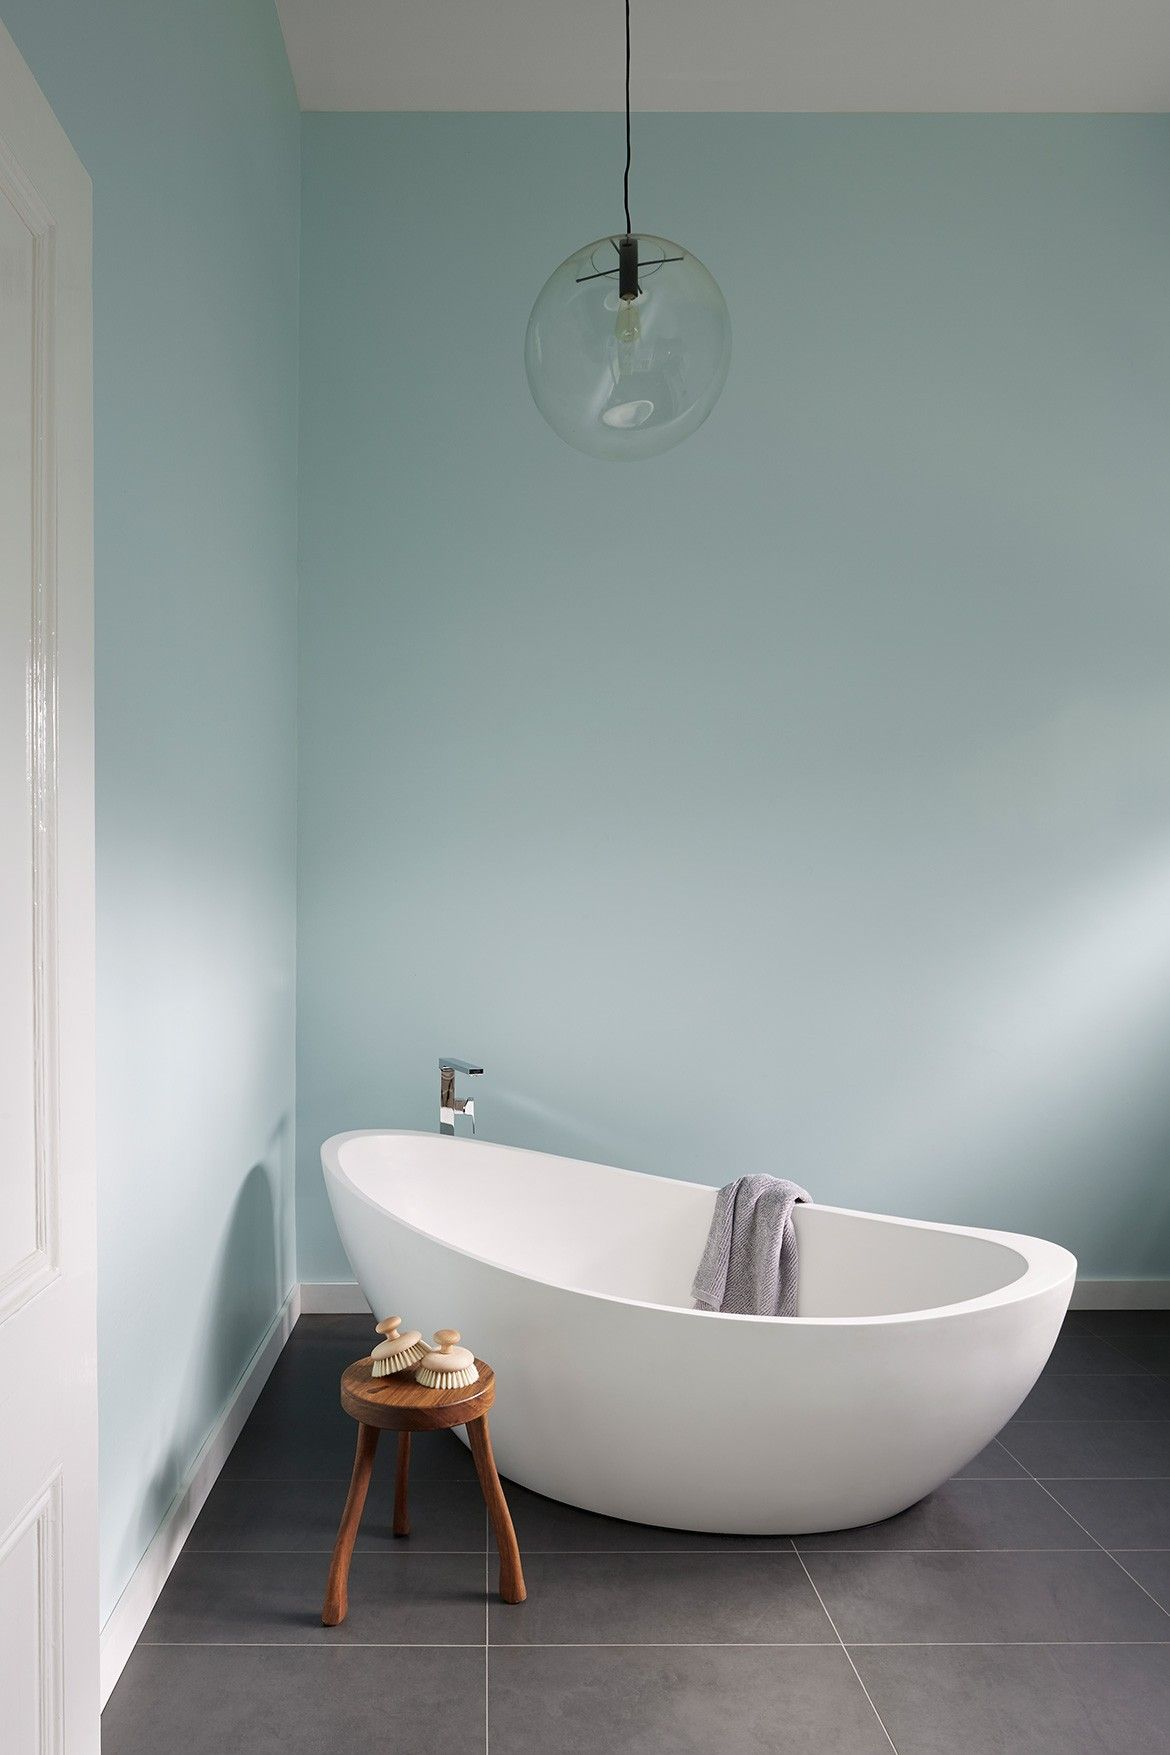 COCOON bathtub design bycocoon.com | bathtub design inspiration ...